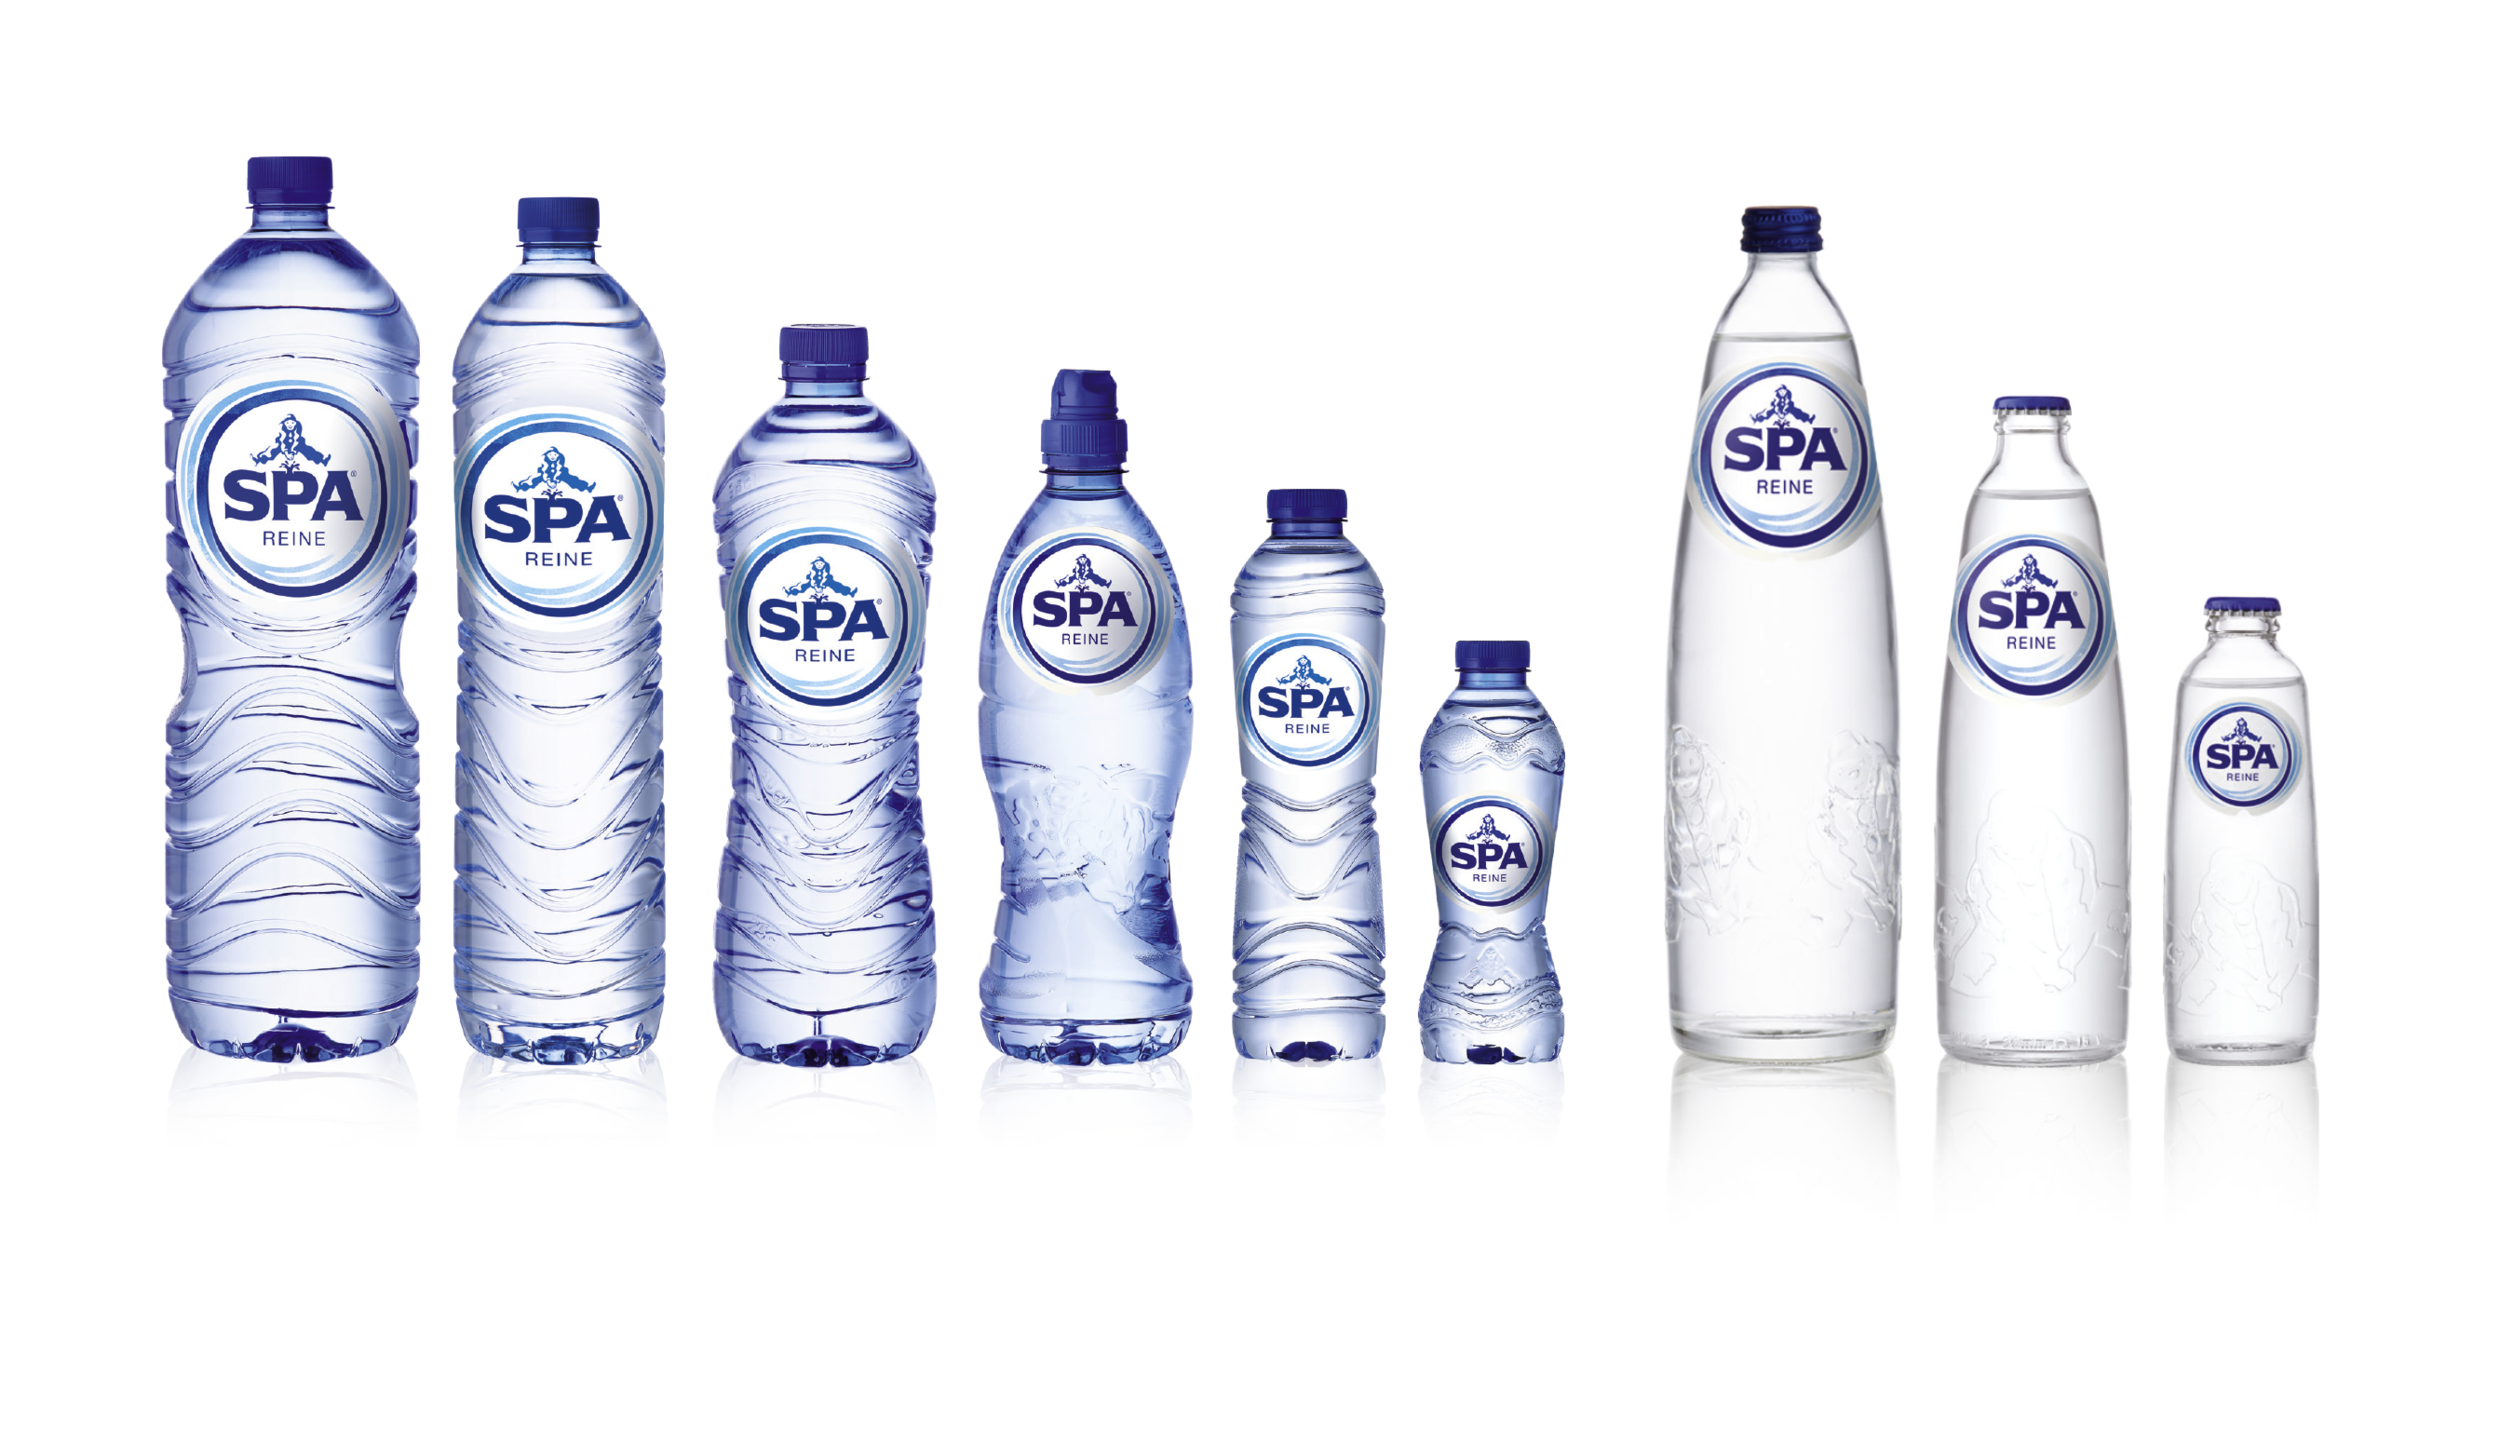 Water works: Spadel is Enterprise of the Year - Published in Wallonia & Brussels, January 2018